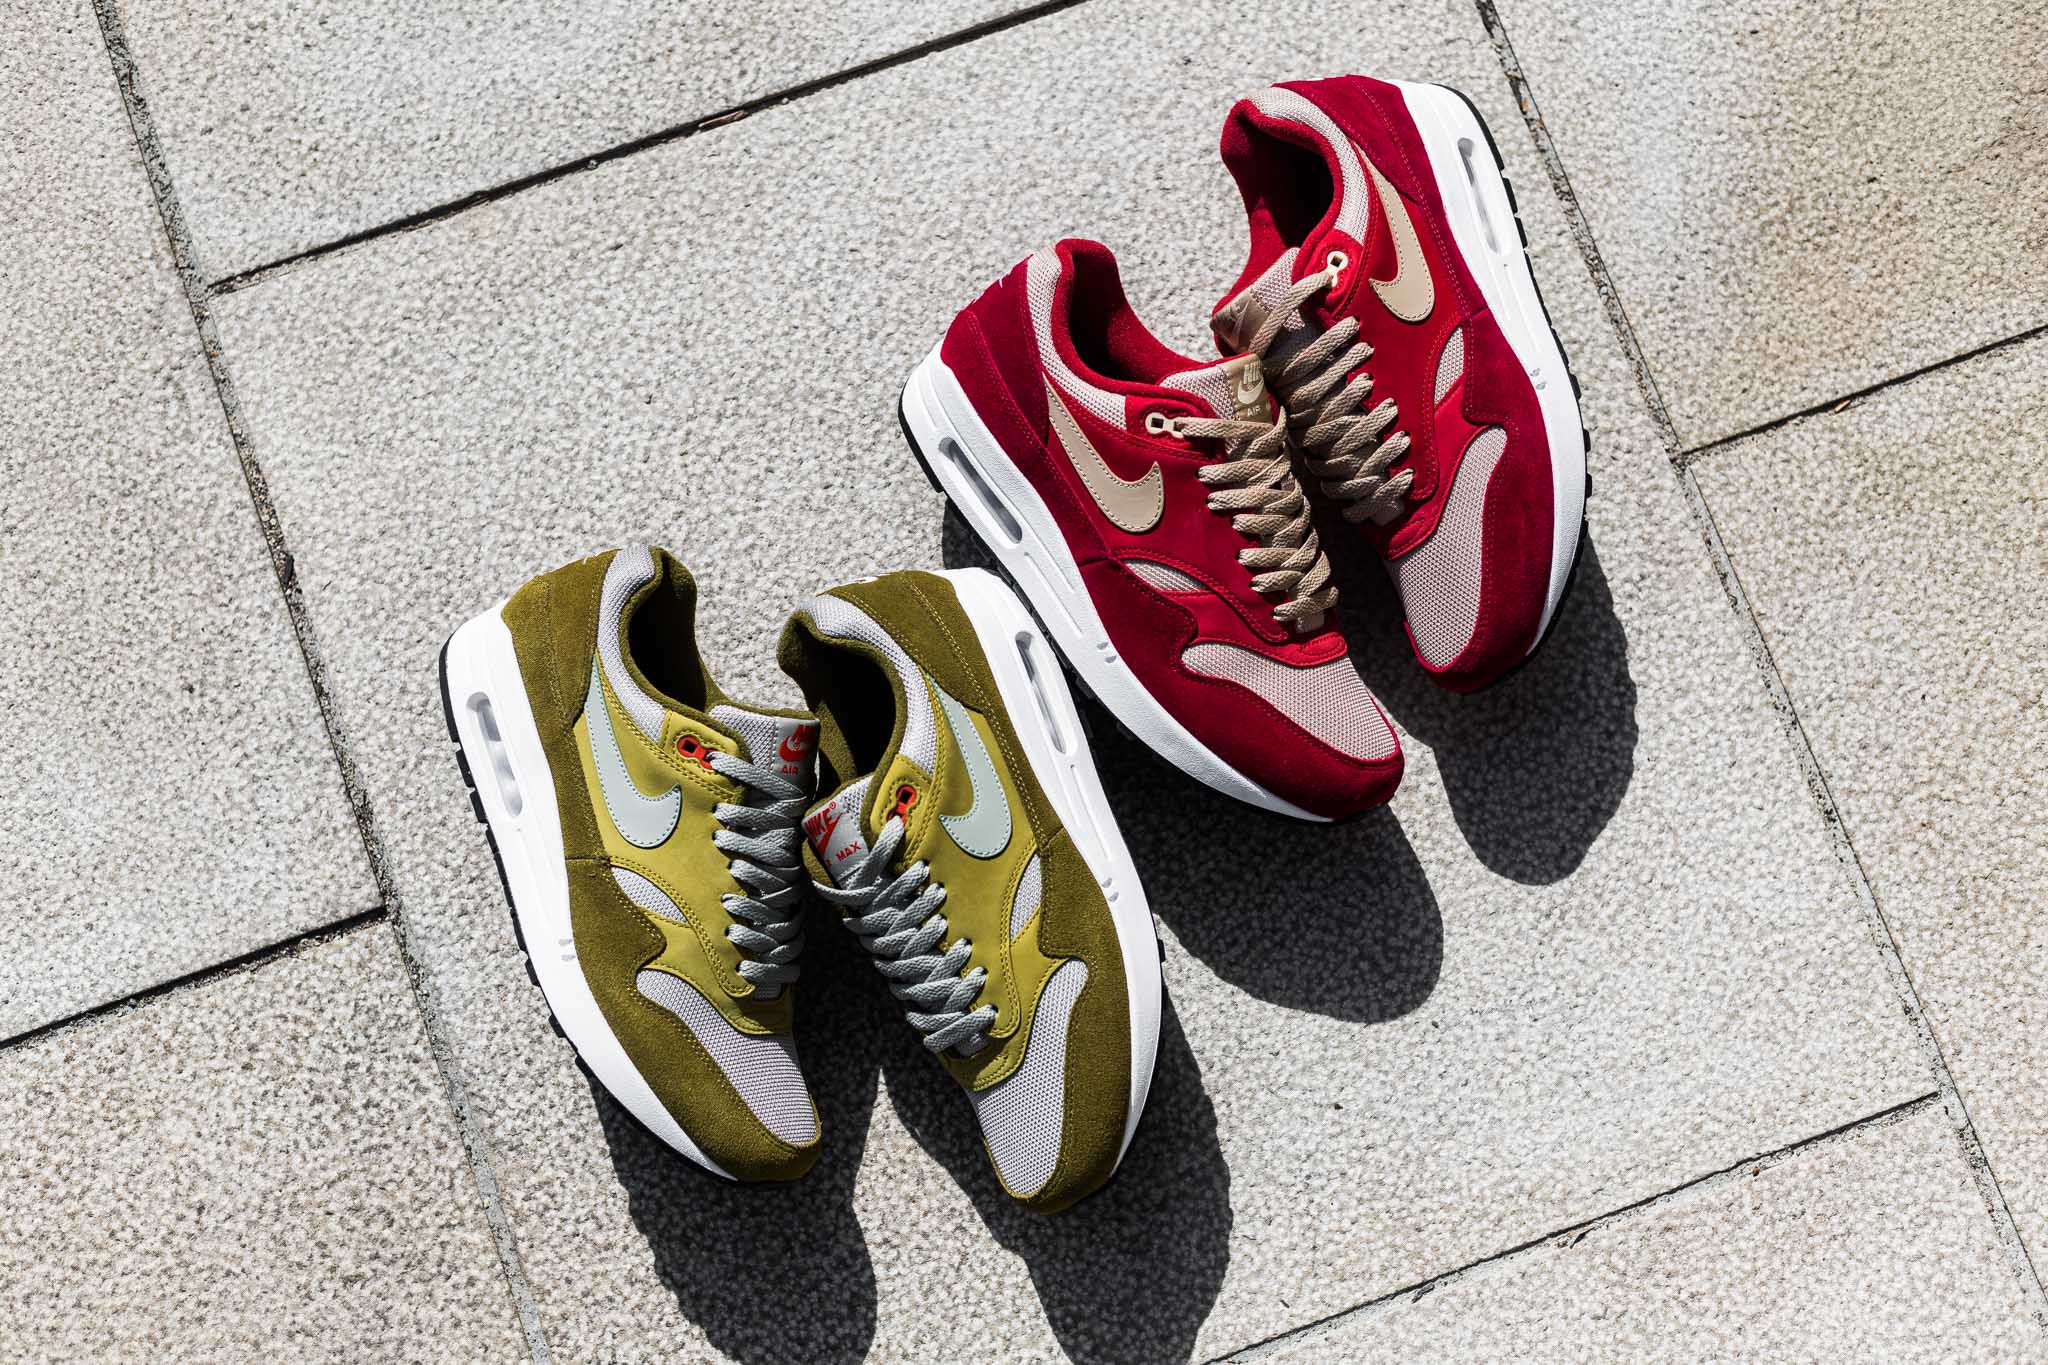 premium selection 9ad48 faf51 The latest iteration of the Air Max 1 draws inspiration from the classic Air  Max 1 Curry from 2003. 15 years later Nike repurposes the original opting  to ...